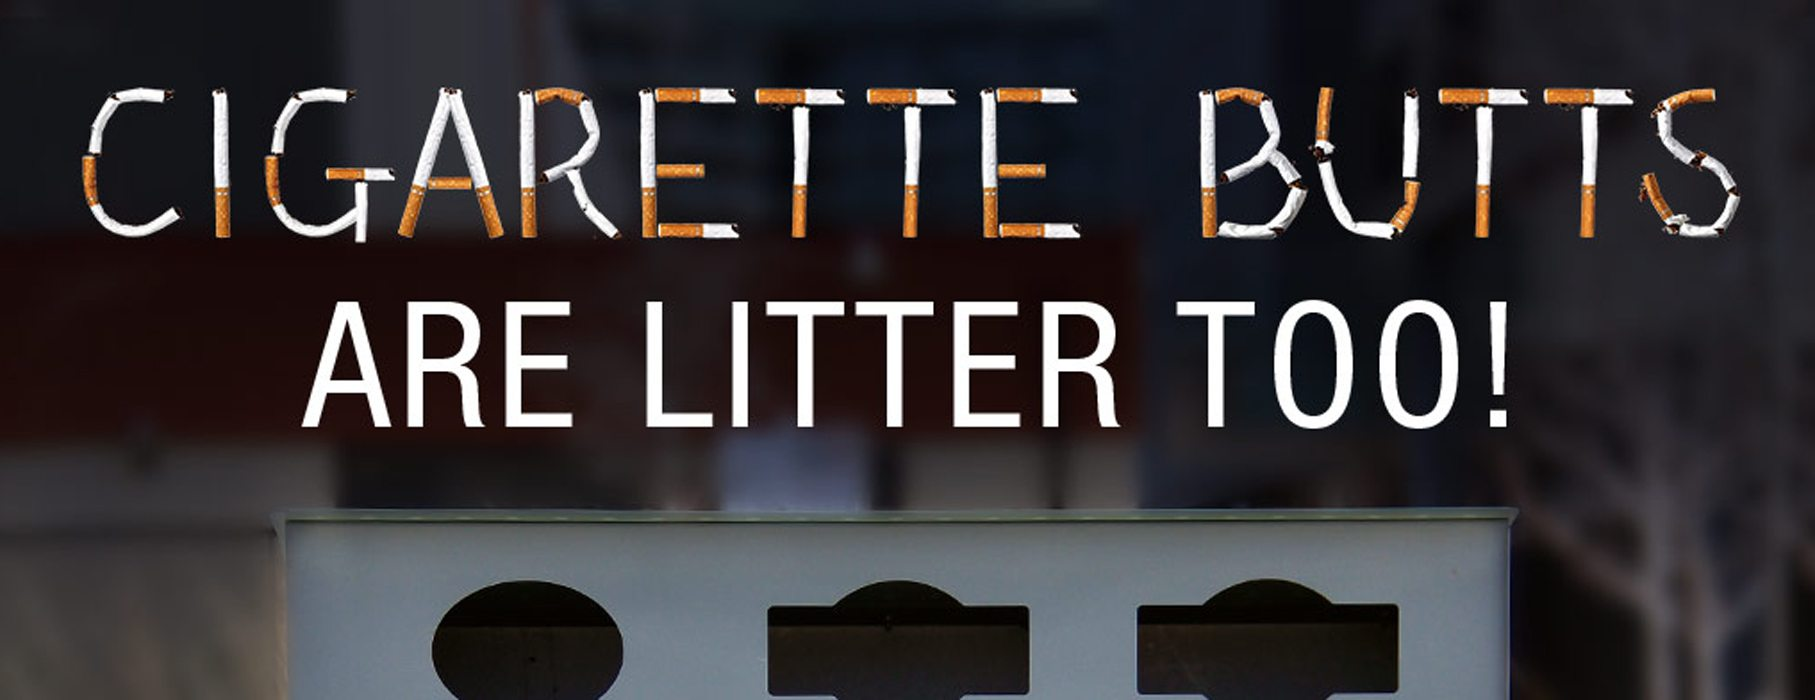 Cigarette Butts Are Litter Too!